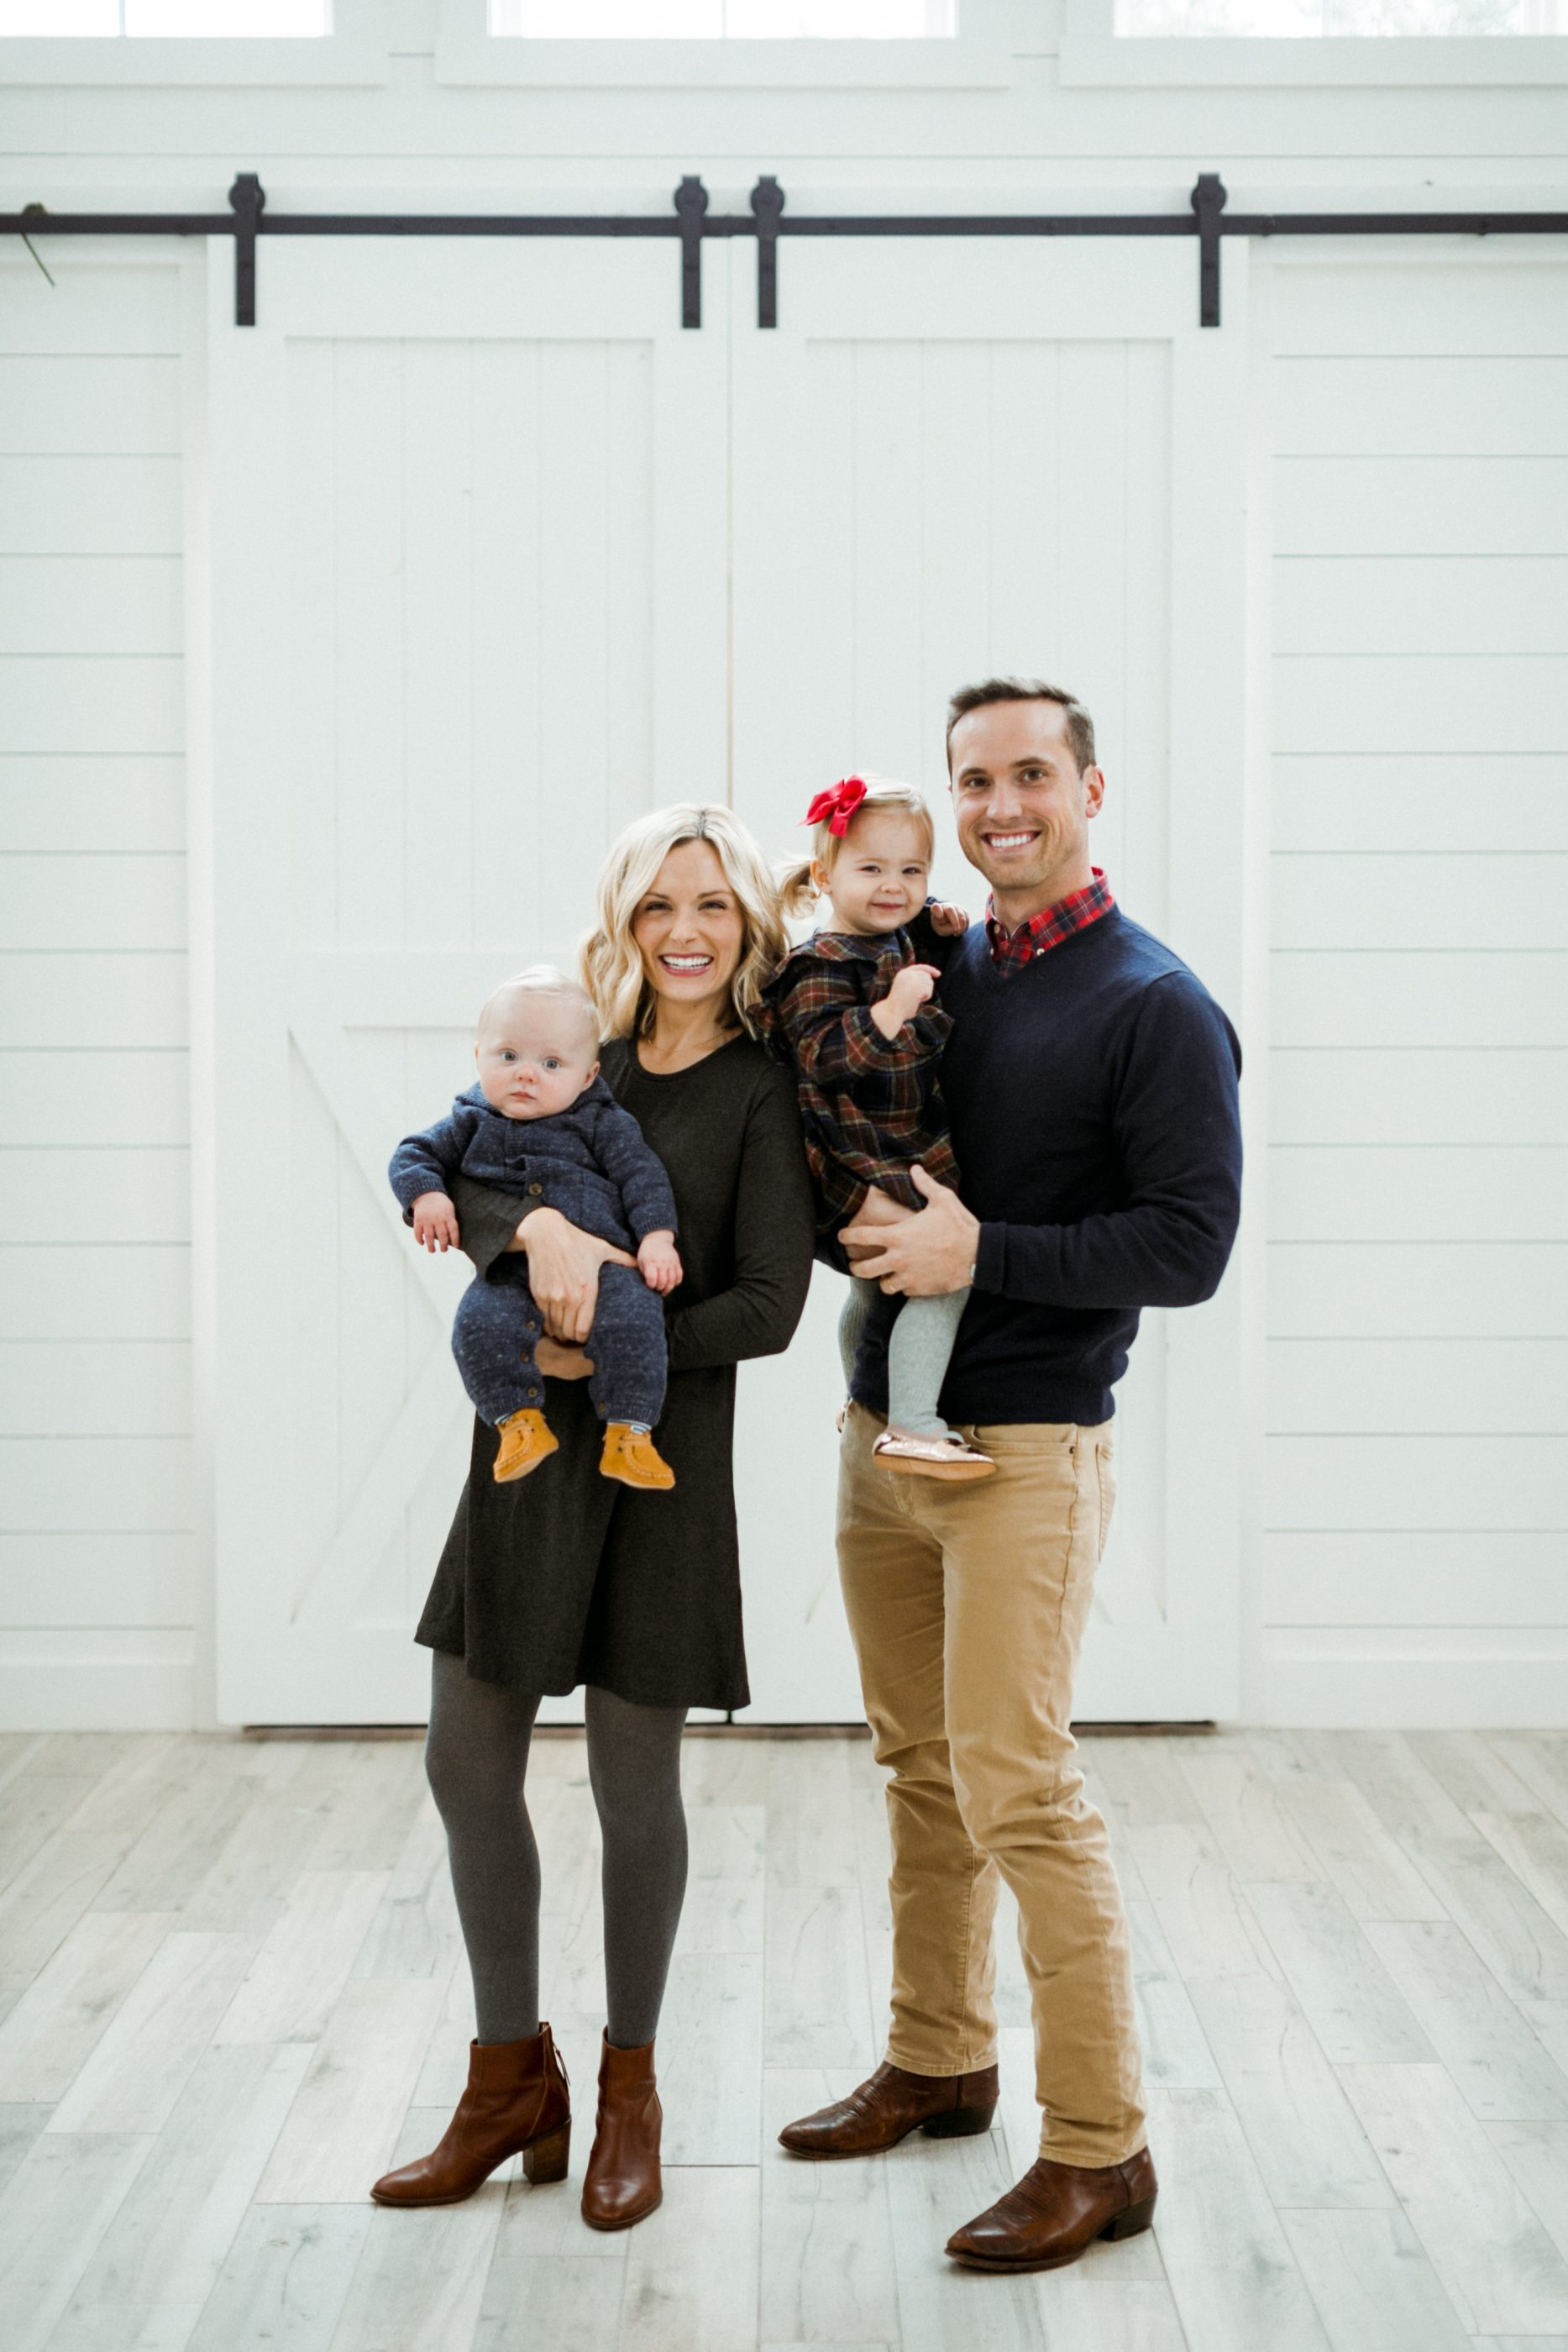 Dillon Meek and family photo in front of white barn door